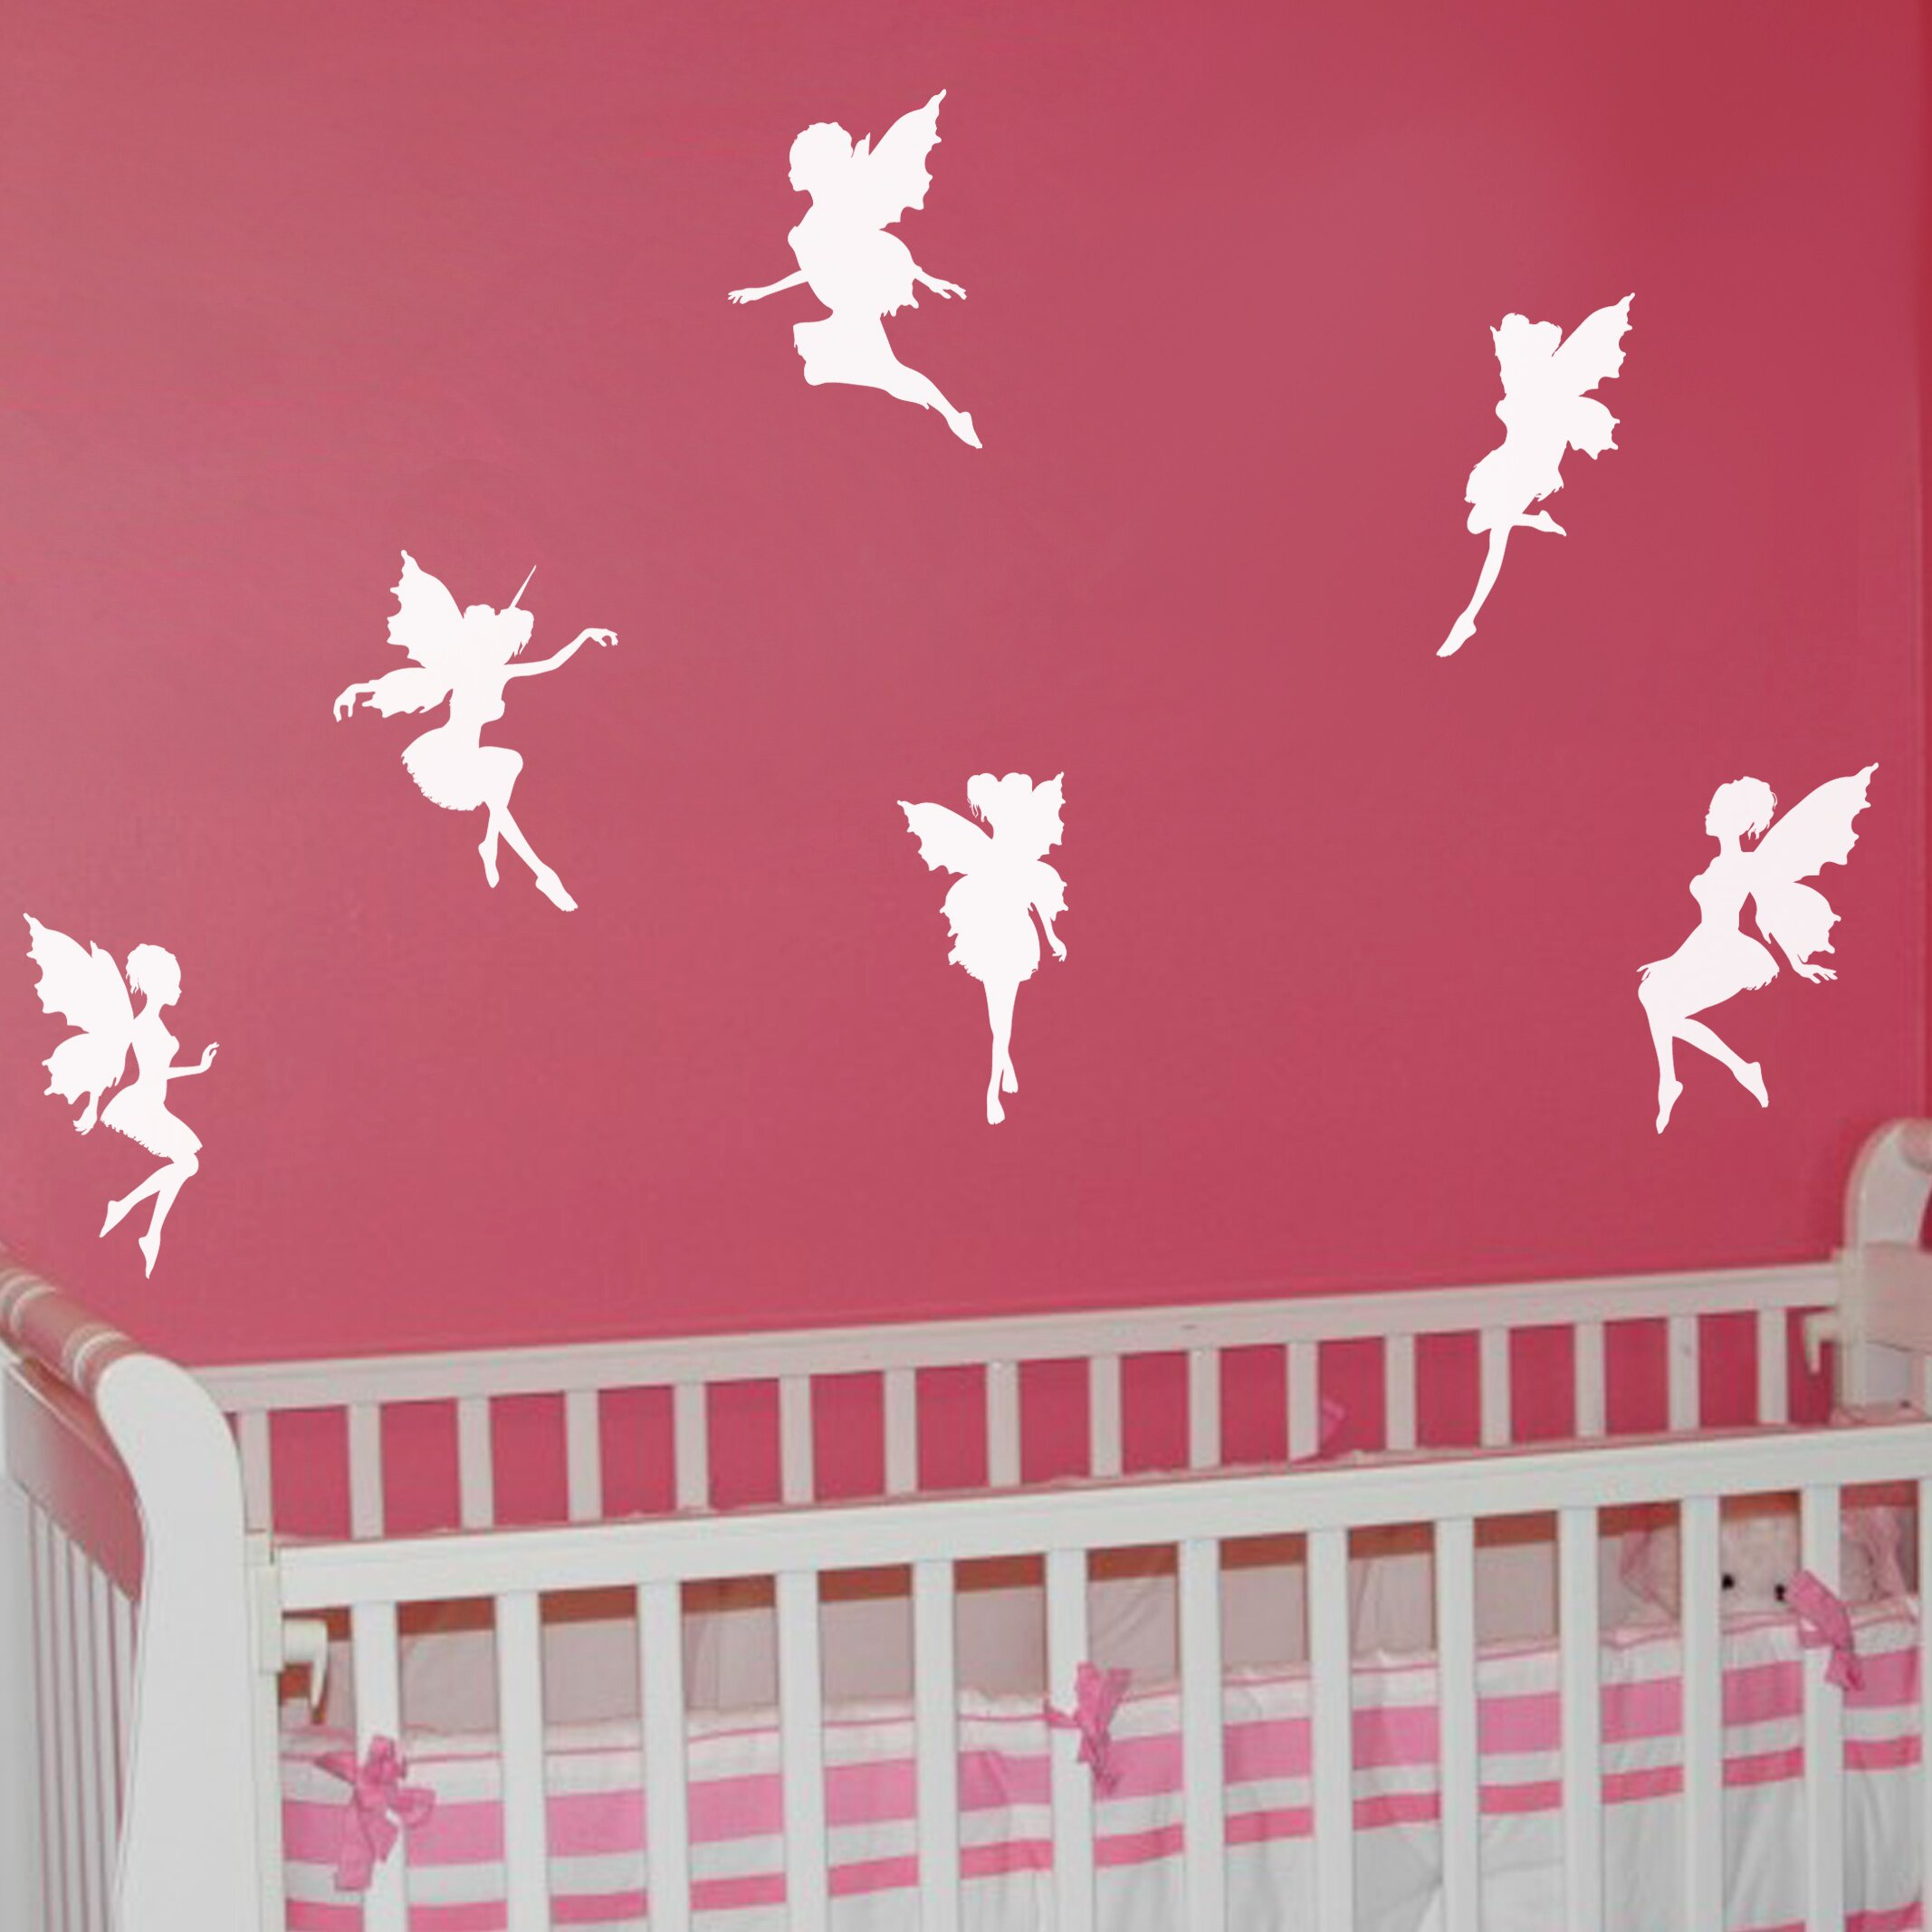 nutmeg wall stickers 6 piece fairies wall sticker set pics photos kitchen wall sticker by nutmeg wall art